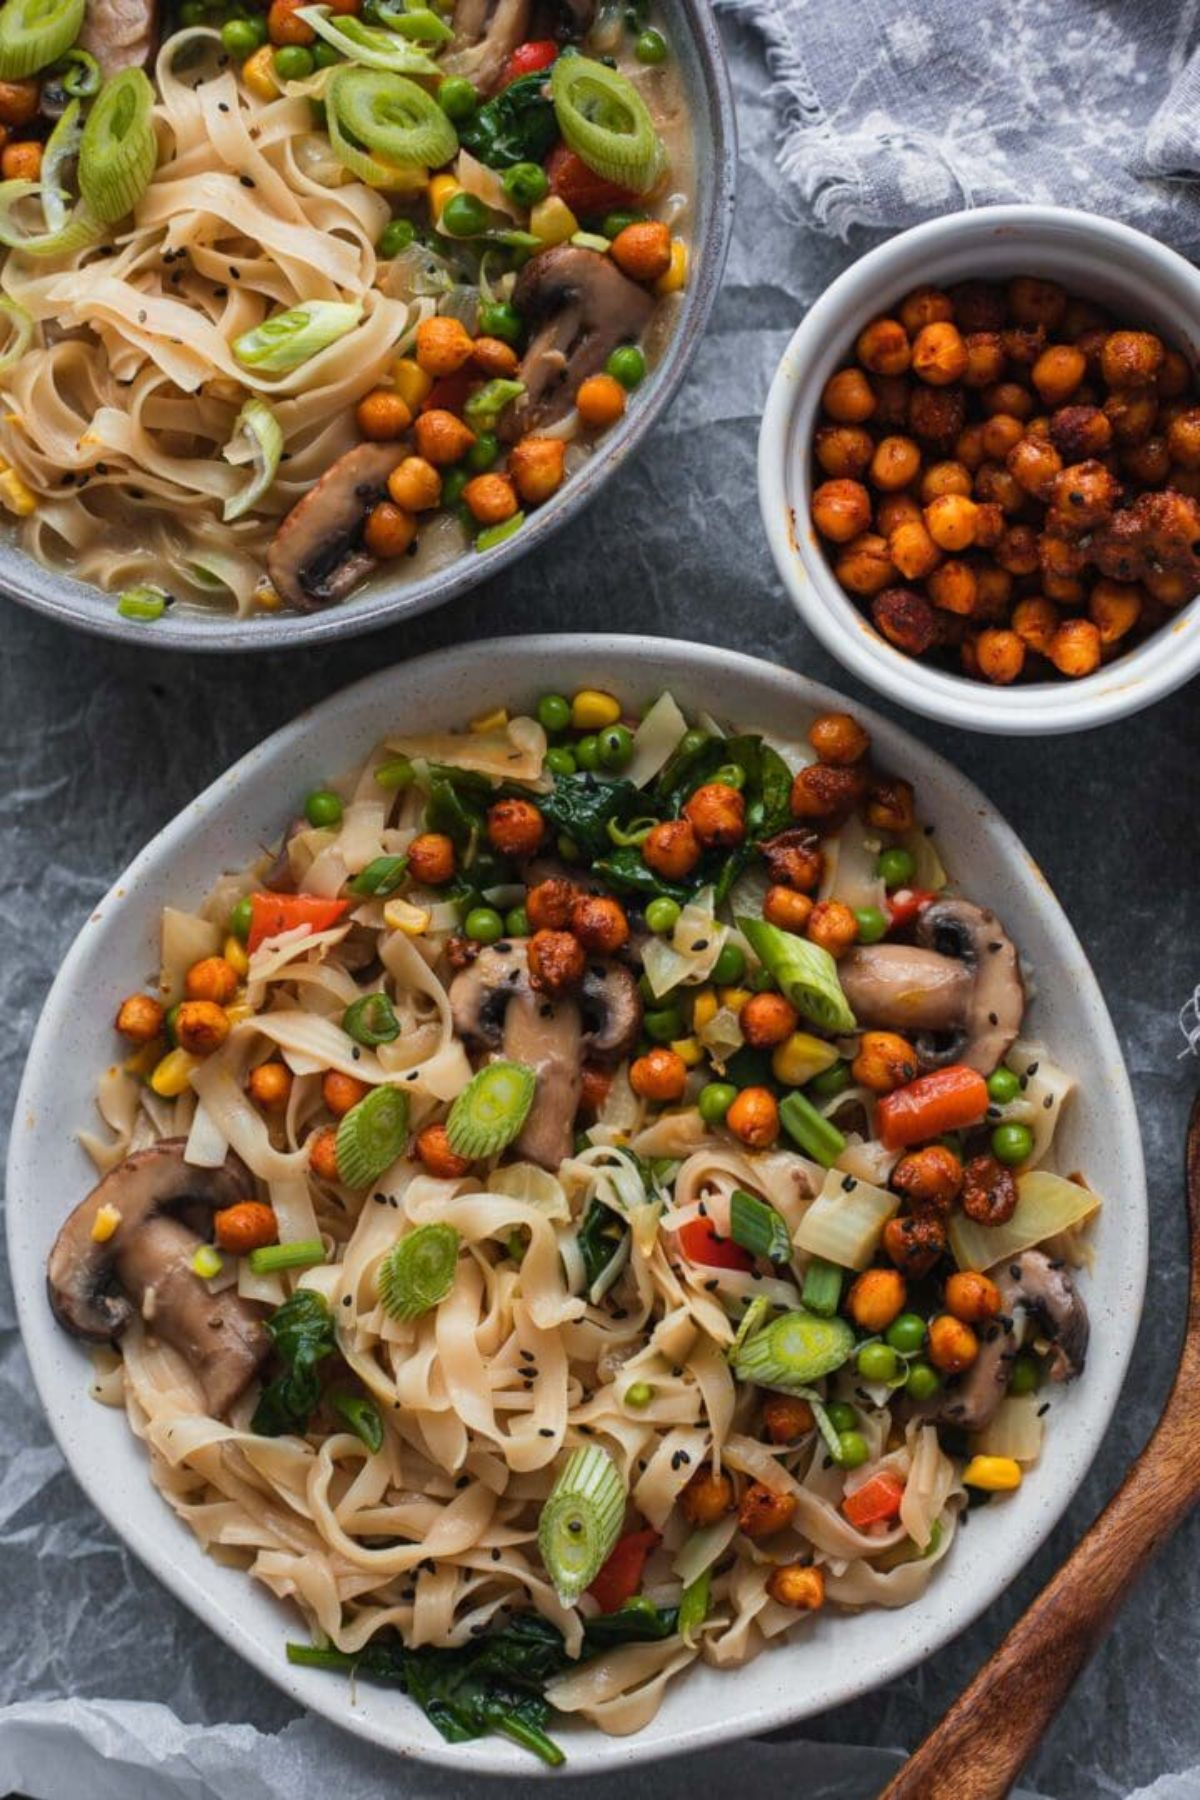 2 bowls full of noodle soup with roasted chickpeas. a bowl of chickpeas sits to the side